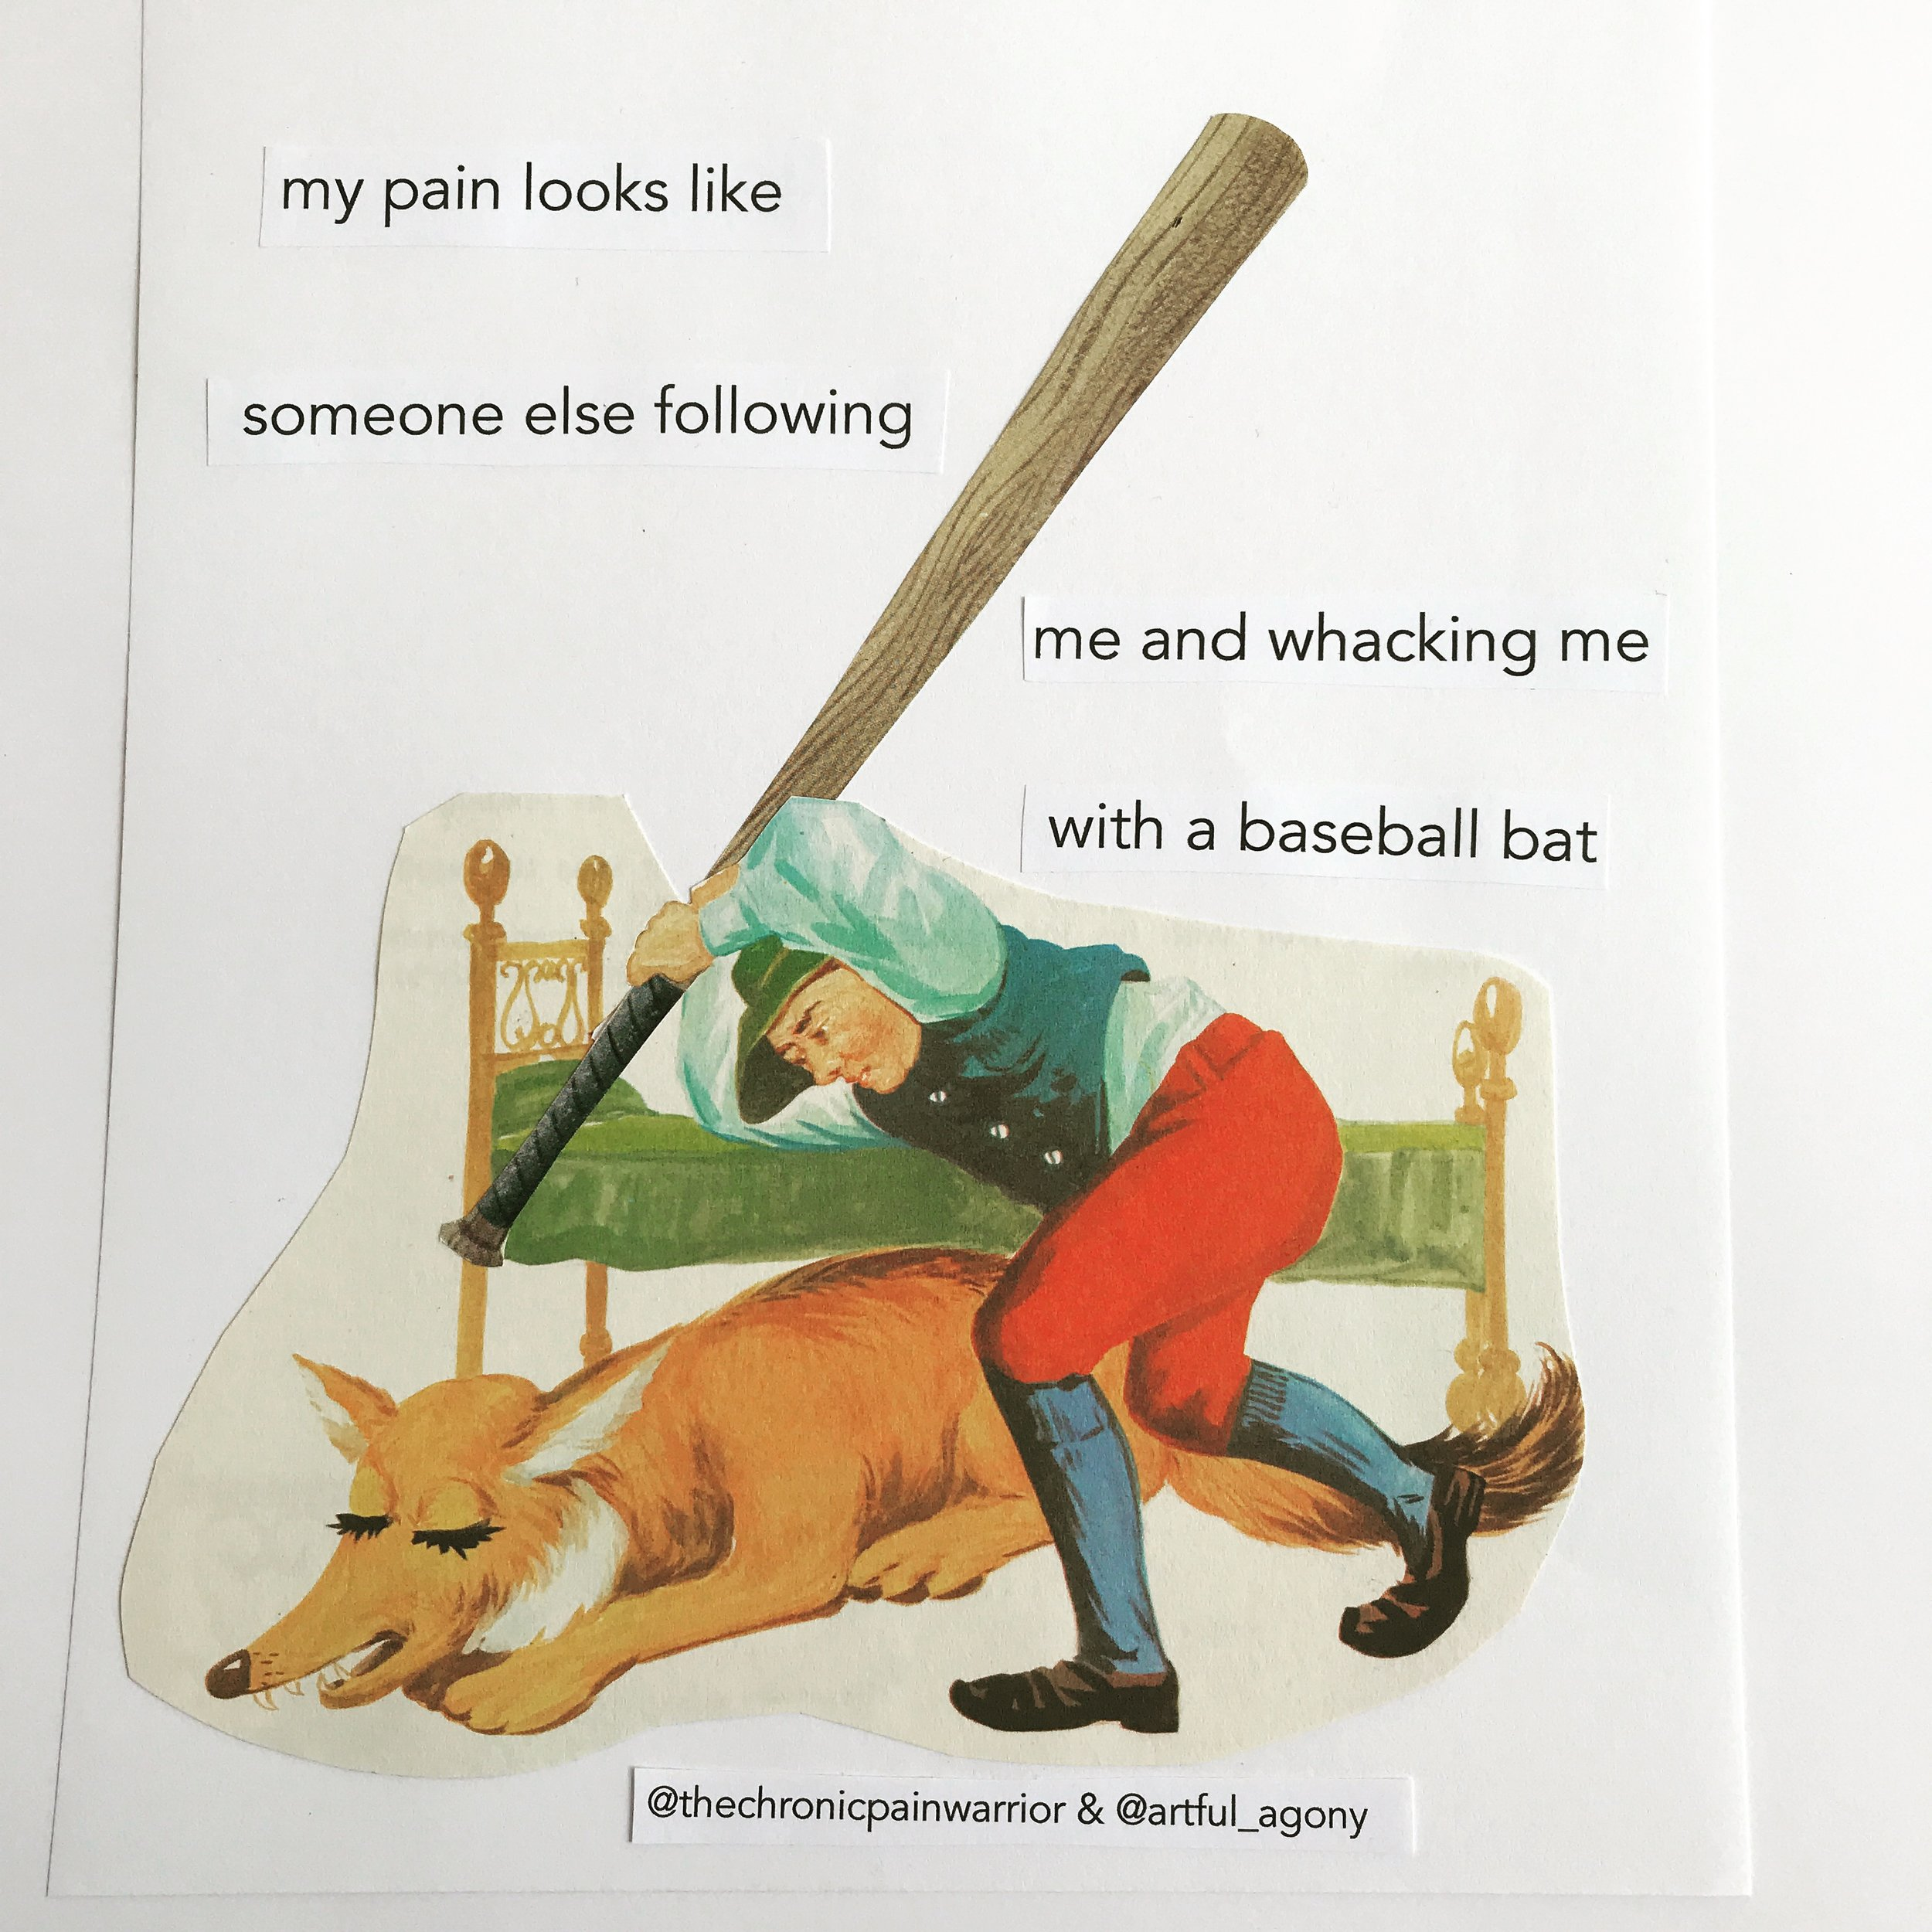 BASEBALL BAT  'My pain looks like someone else following me and whacking me with a baseball bat.'  submitted by @thechronicpainwarrior